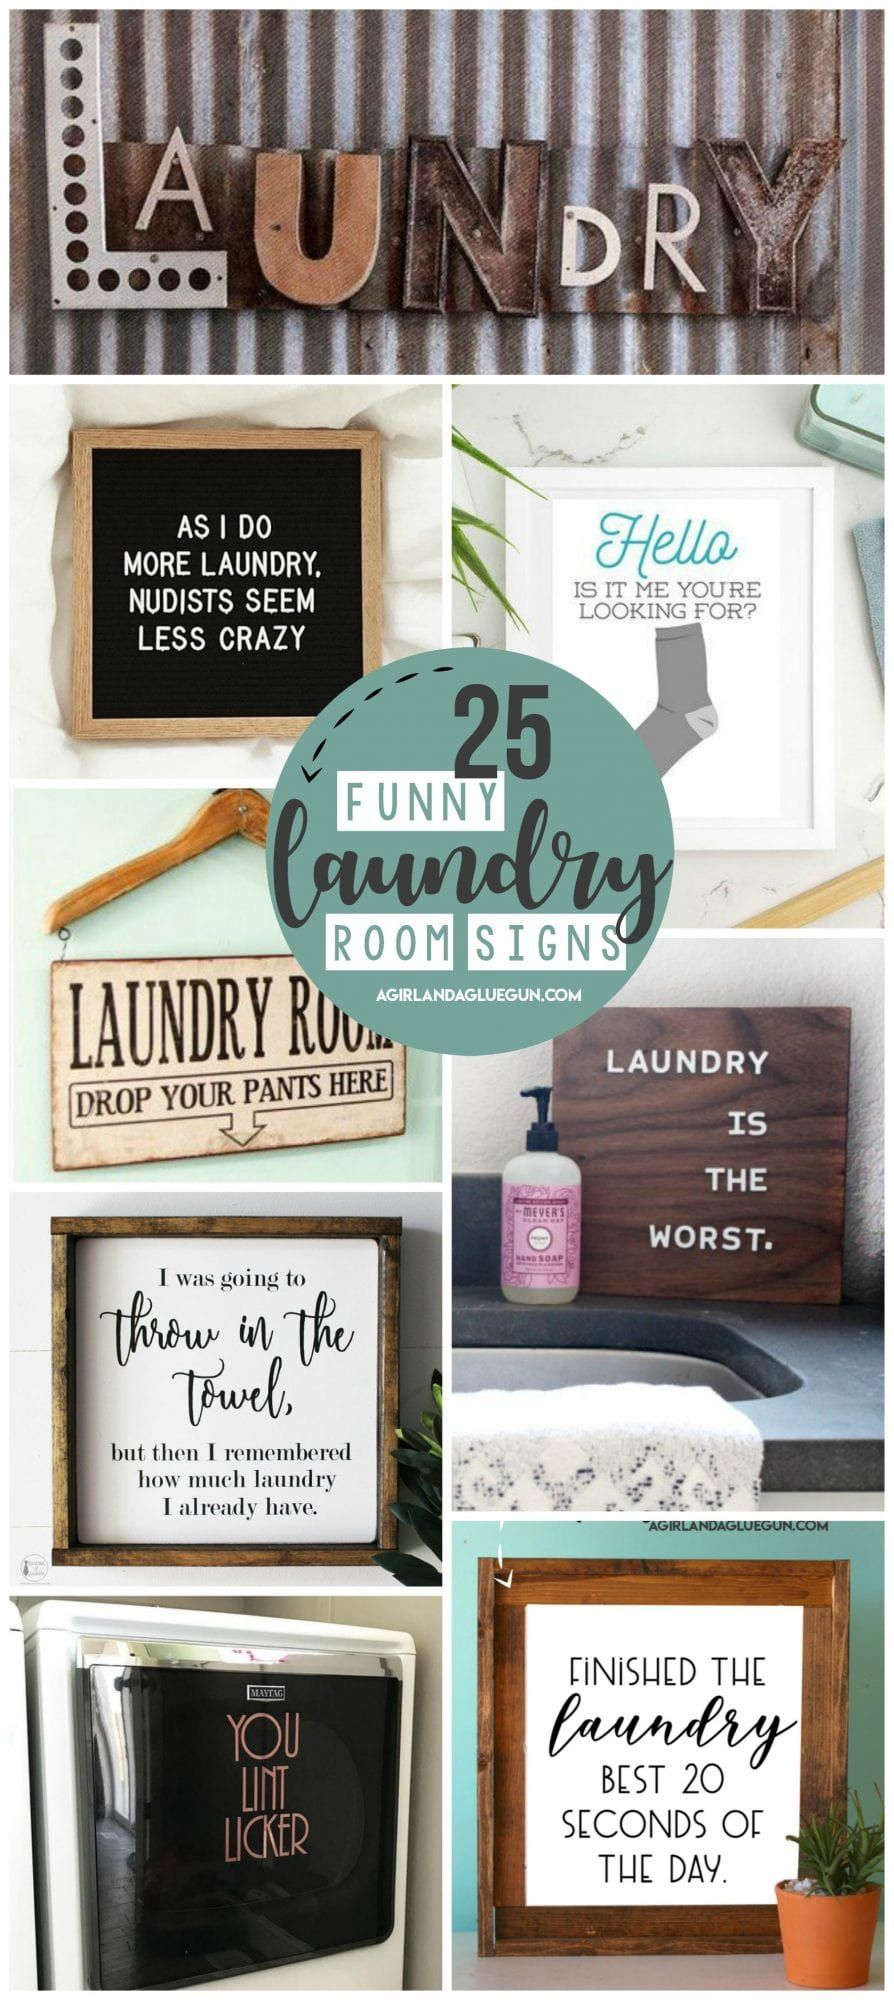 Laundry Room Signs images